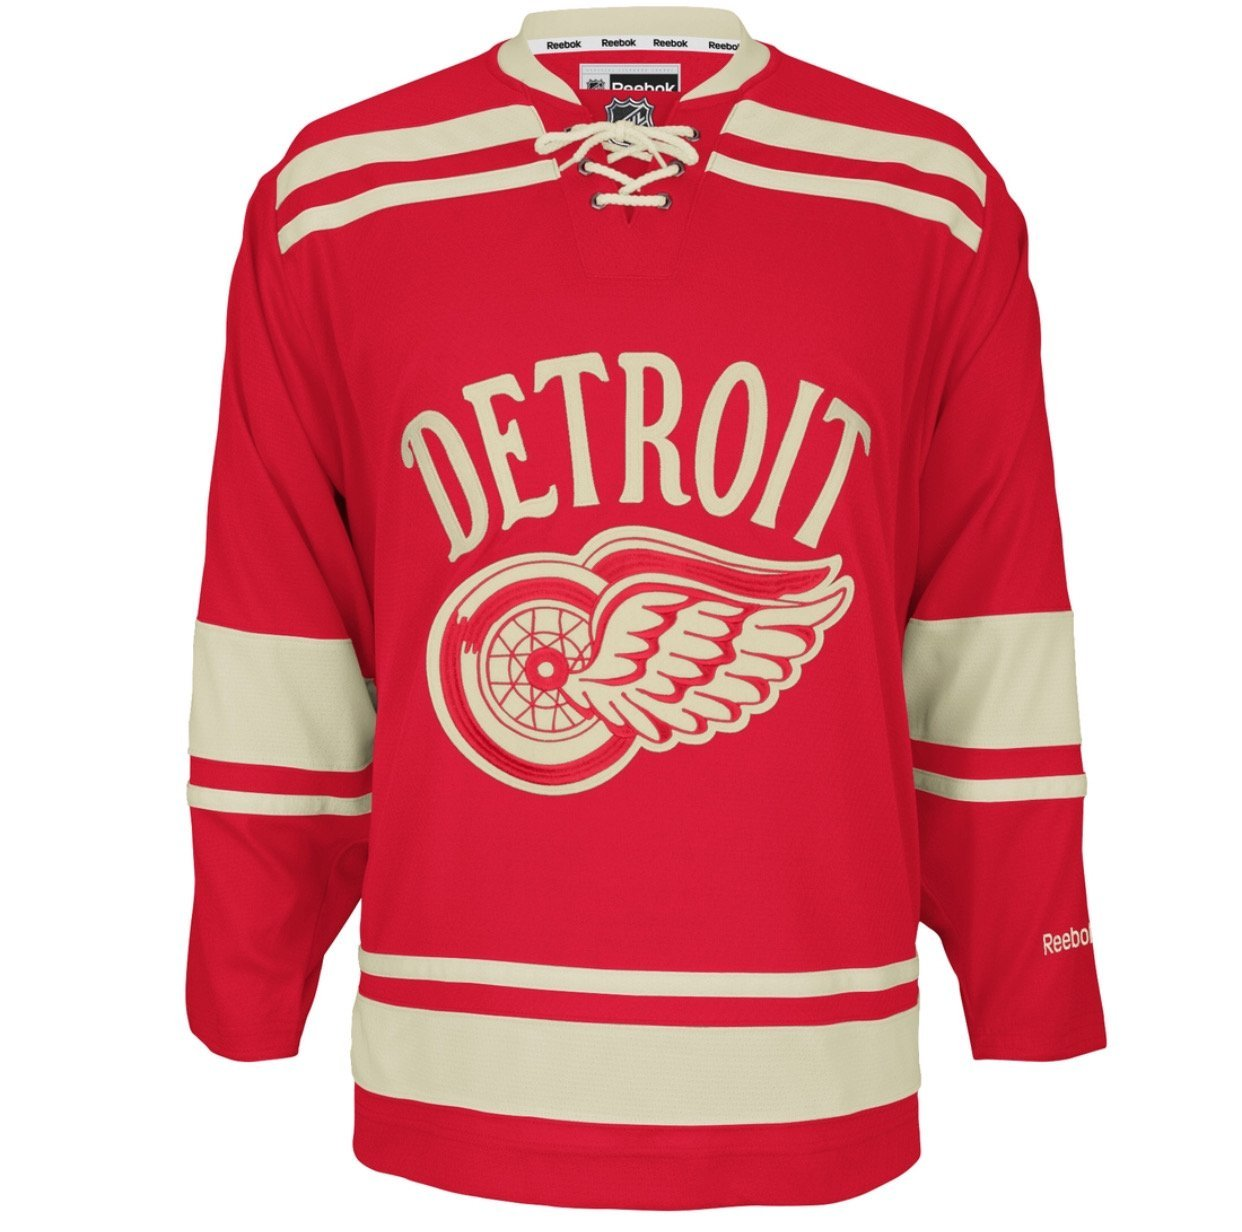 4e754d24409 Shop and Save more than 50% at The Jersey Barn! New High Quality Detroit  Red Wings Premier Adidas NHL Home & Road Jerseys. Fast order processing and  Free ...